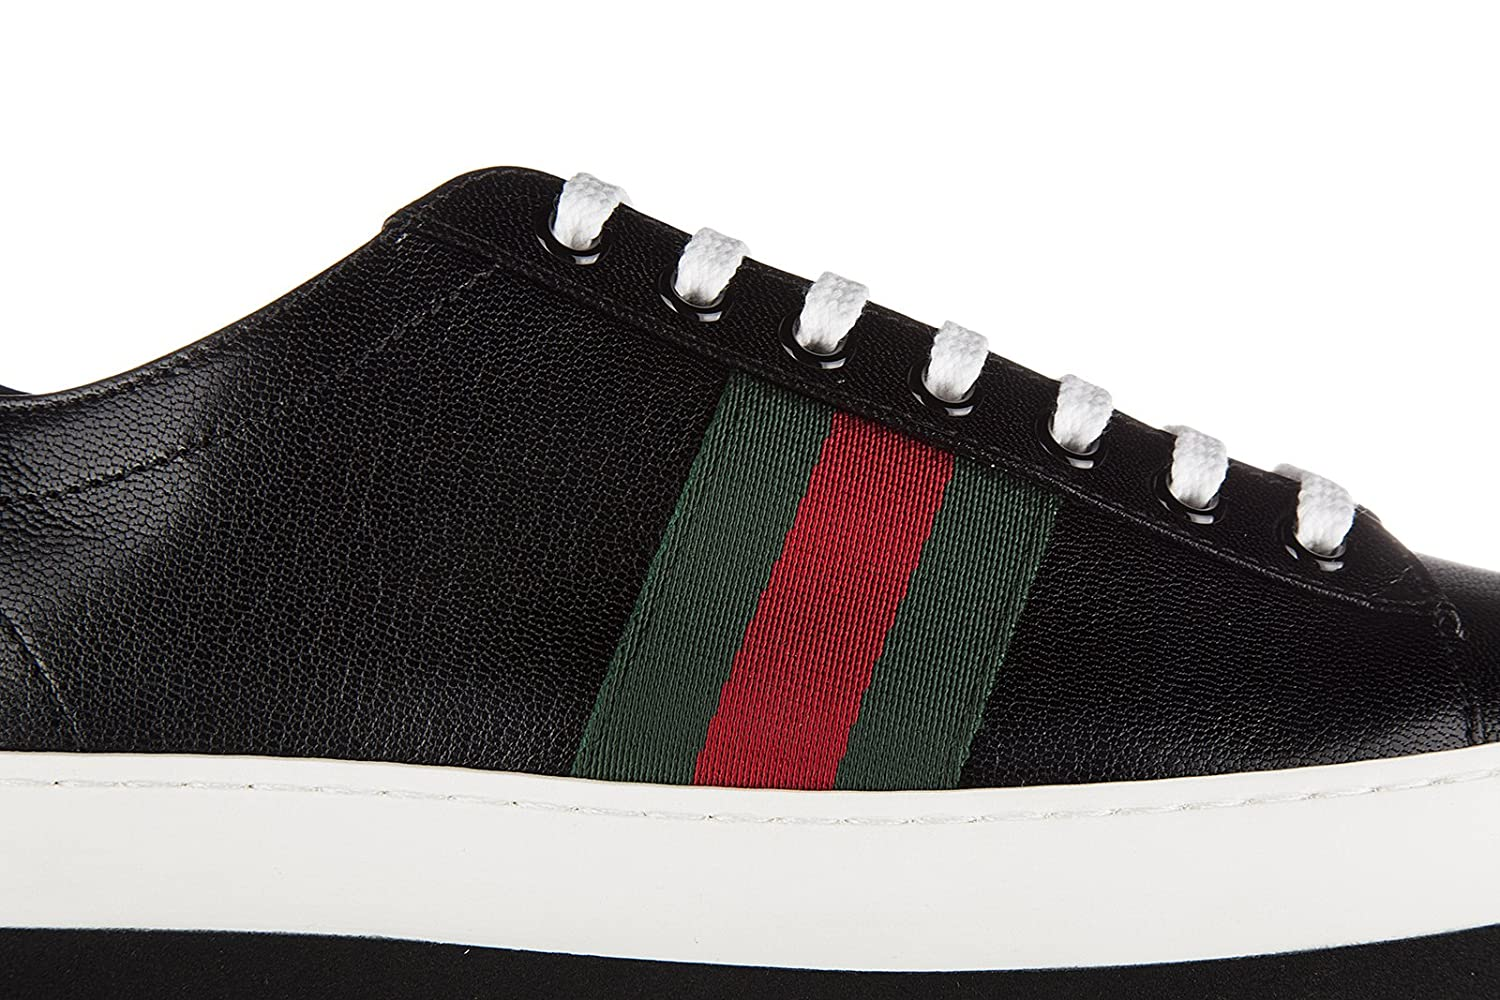 cef5aad0b84 Gucci Women s Shoes Leather Trainers Sneakers Quentin Plateau Black UK Size  4 452312 D3VN0 1060  Amazon.co.uk  Shoes   Bags